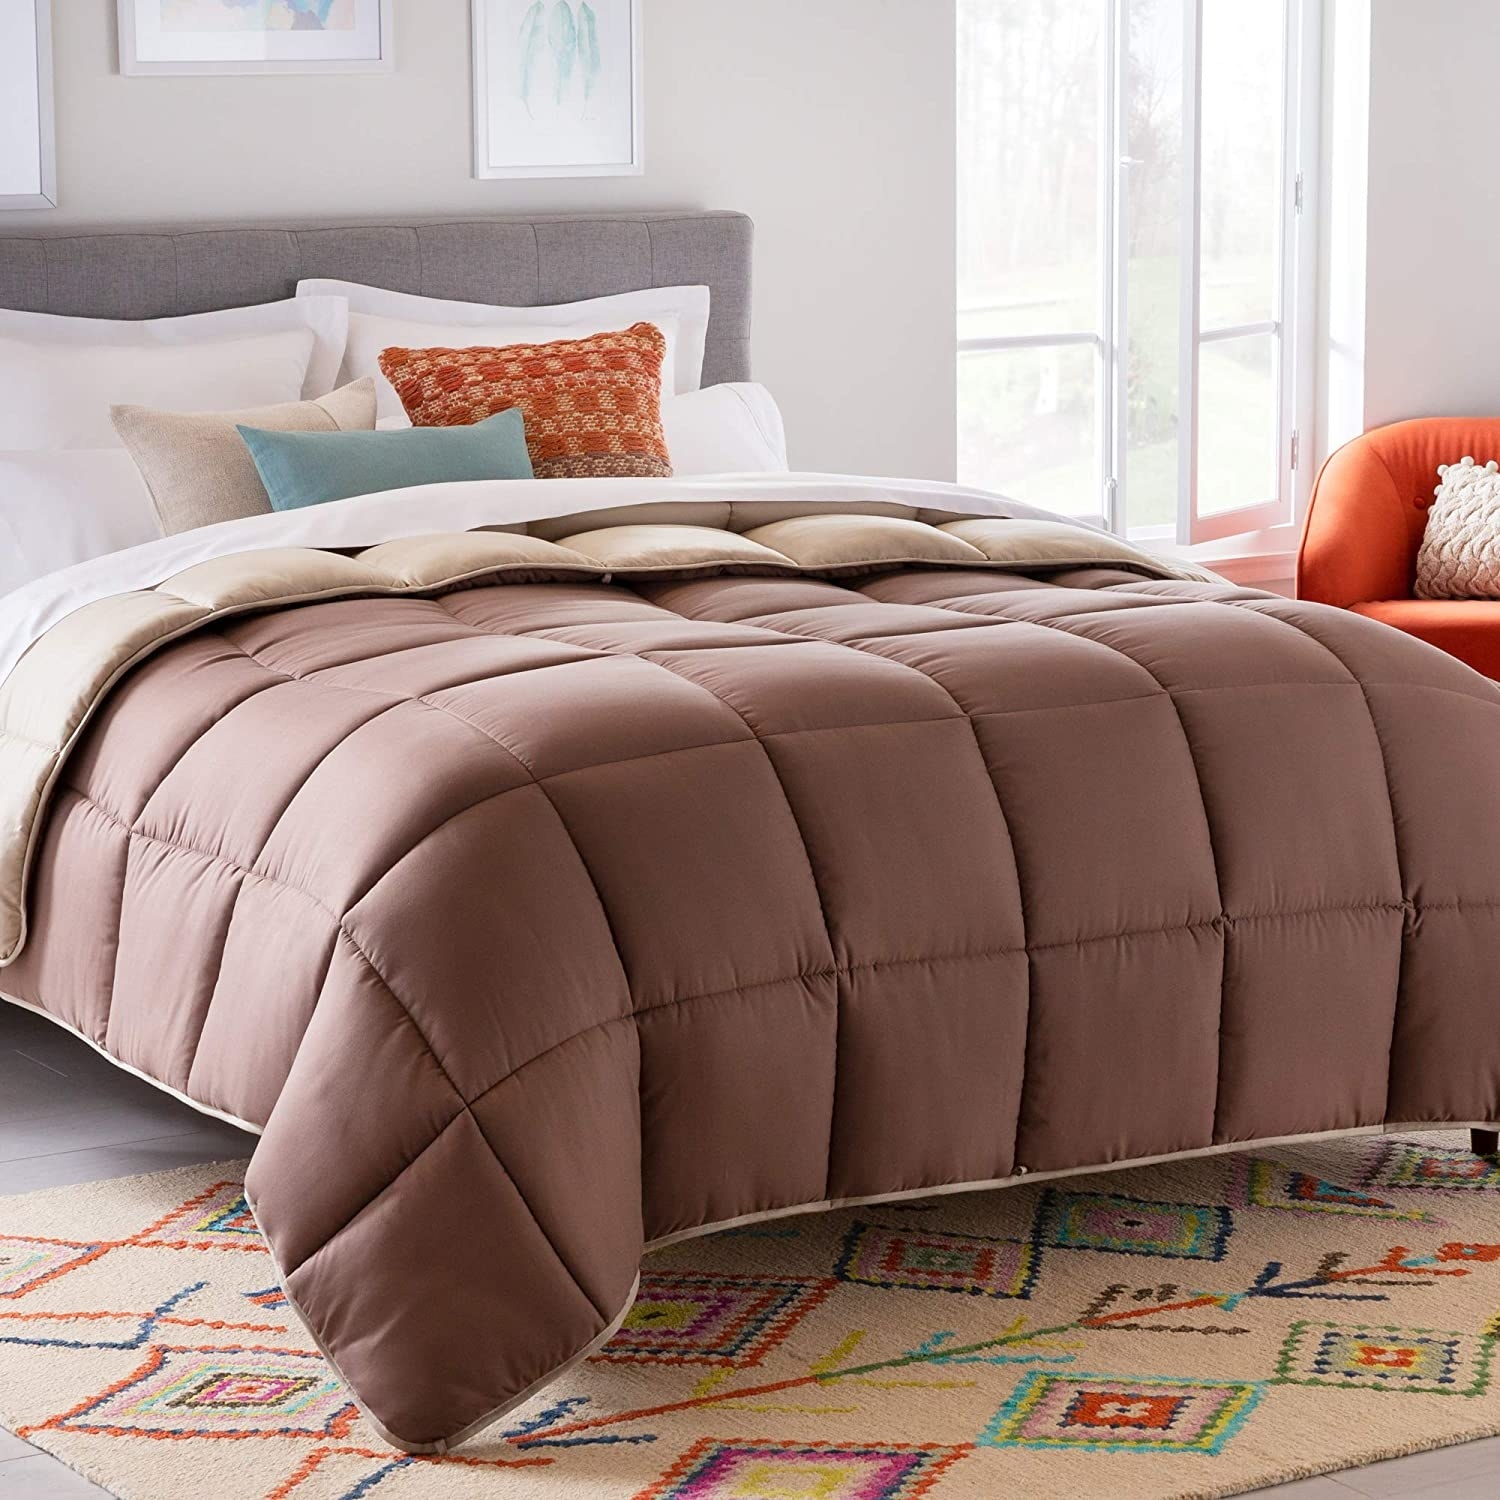 A bedspread on top of a bed